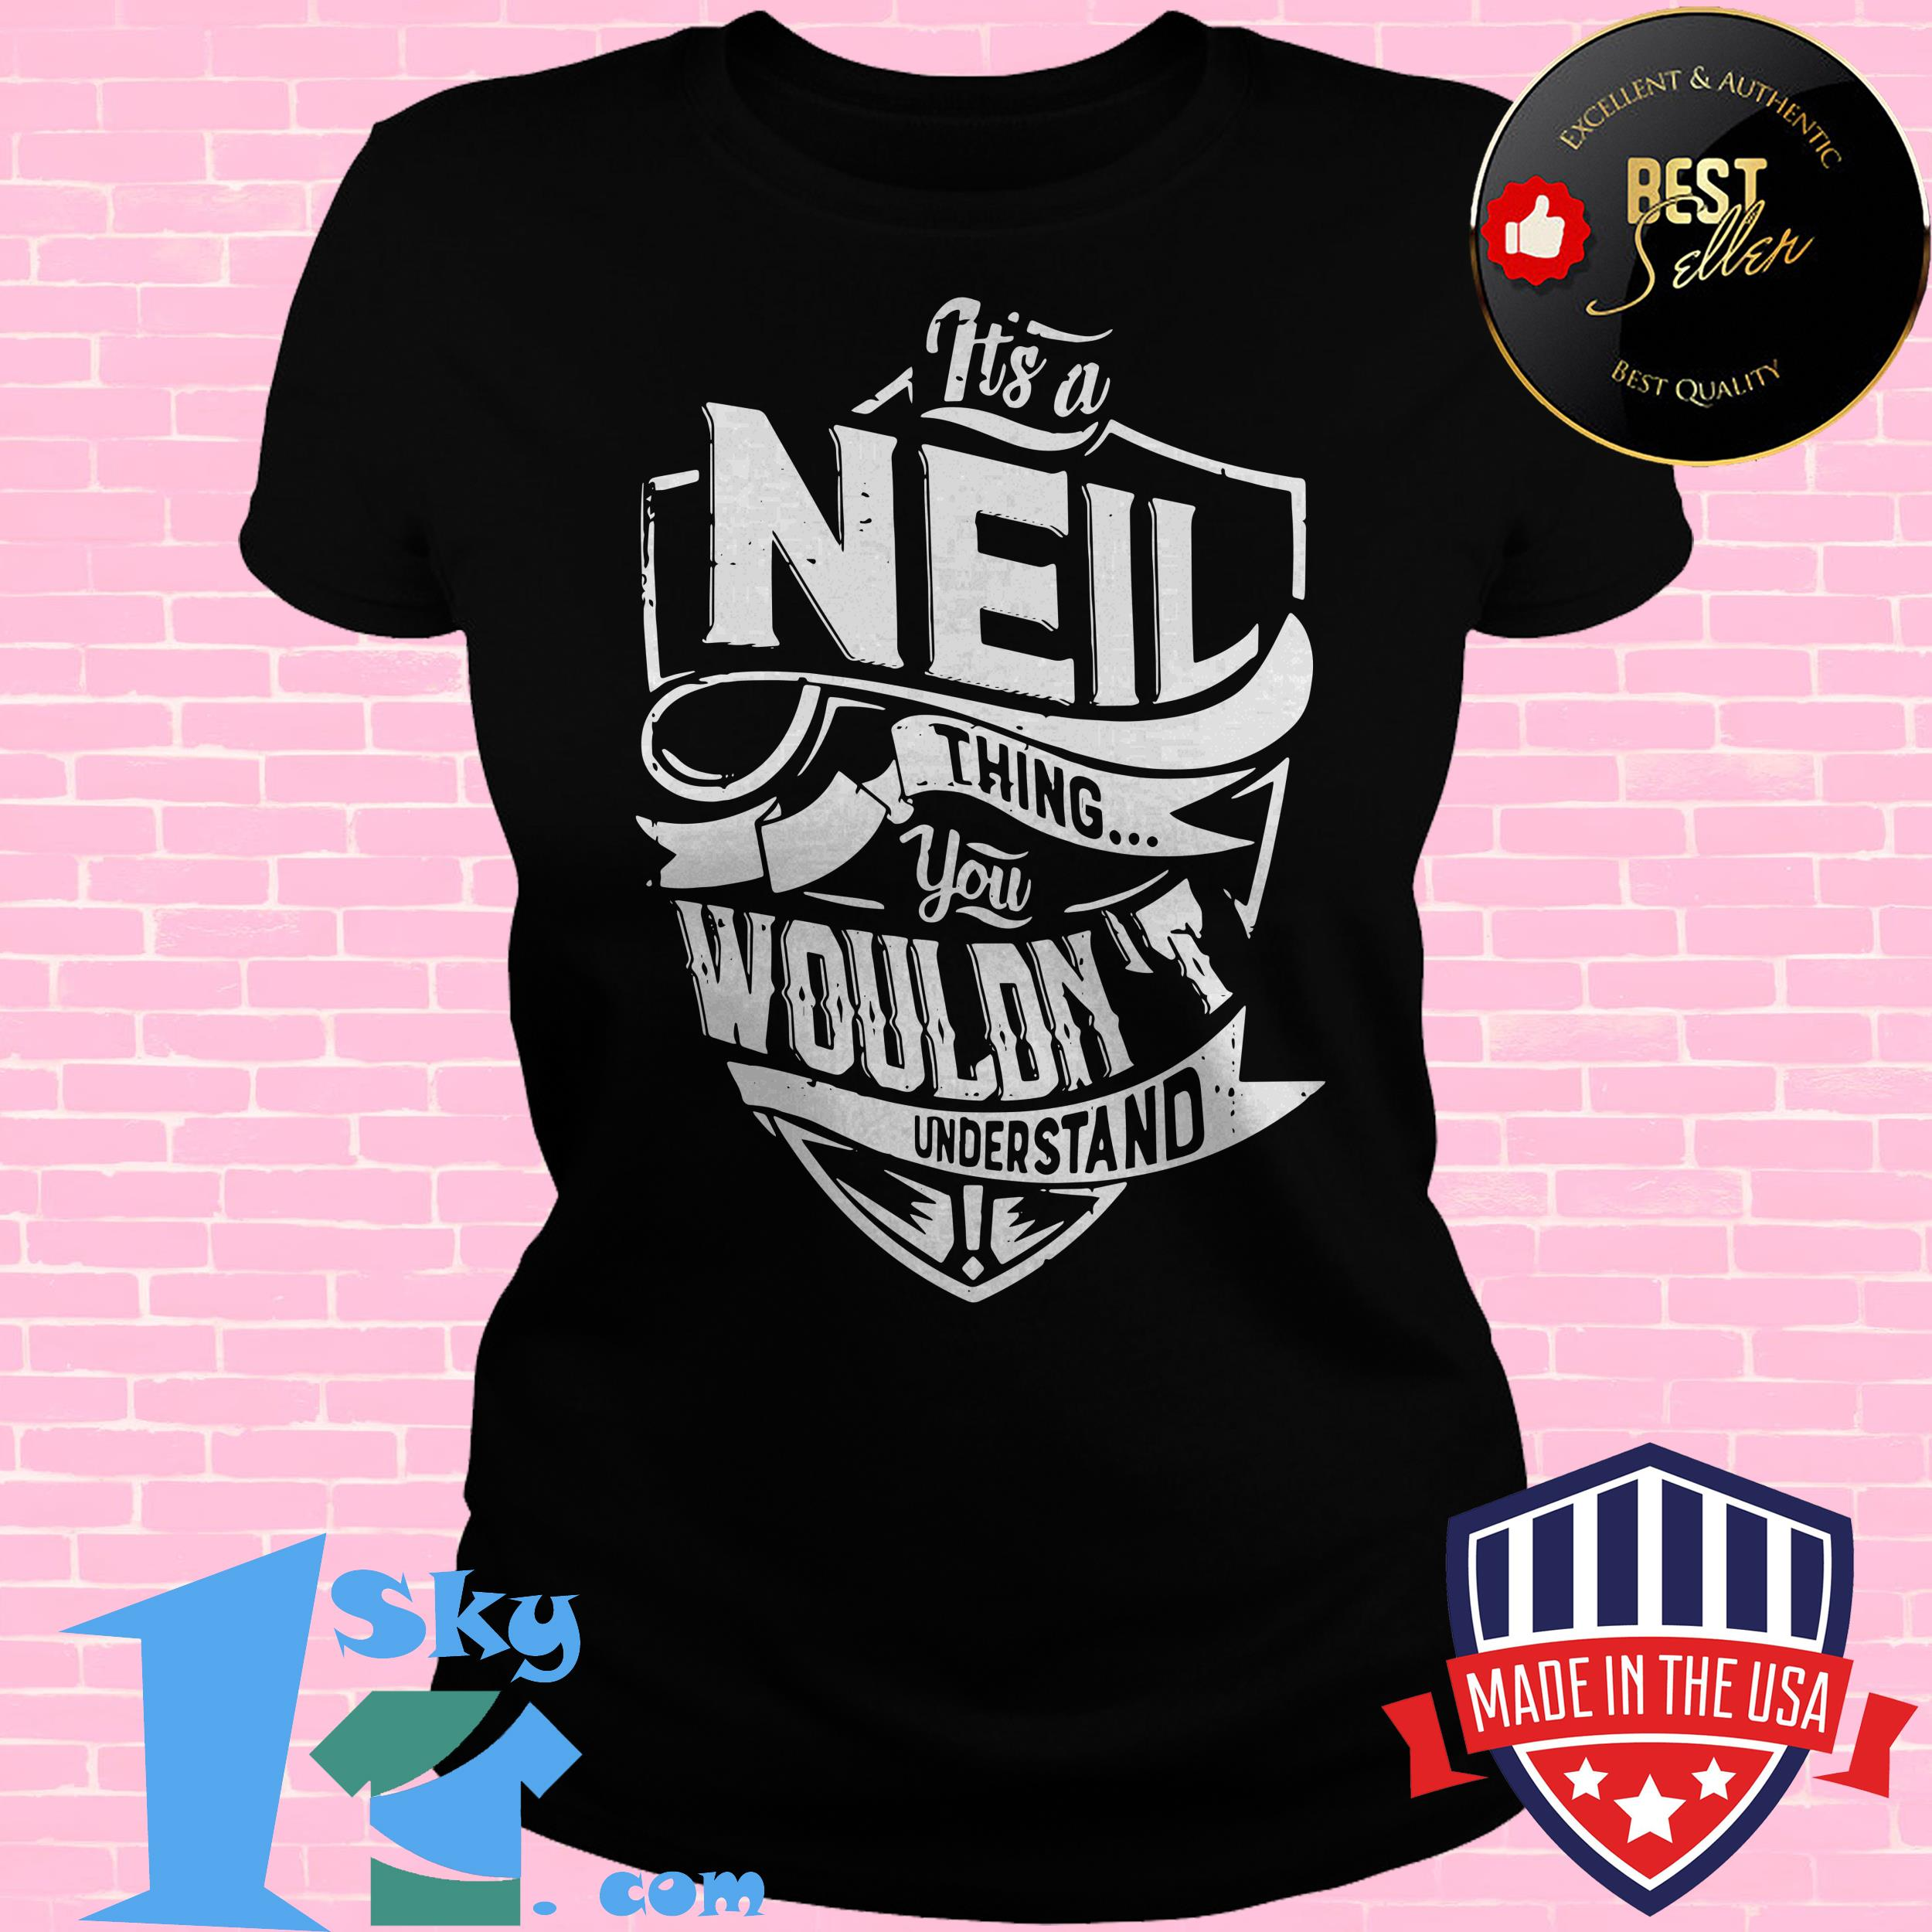 neil thing you wouldnt understand ladies tee - Neil Thing You Wouldn't Understand shirt